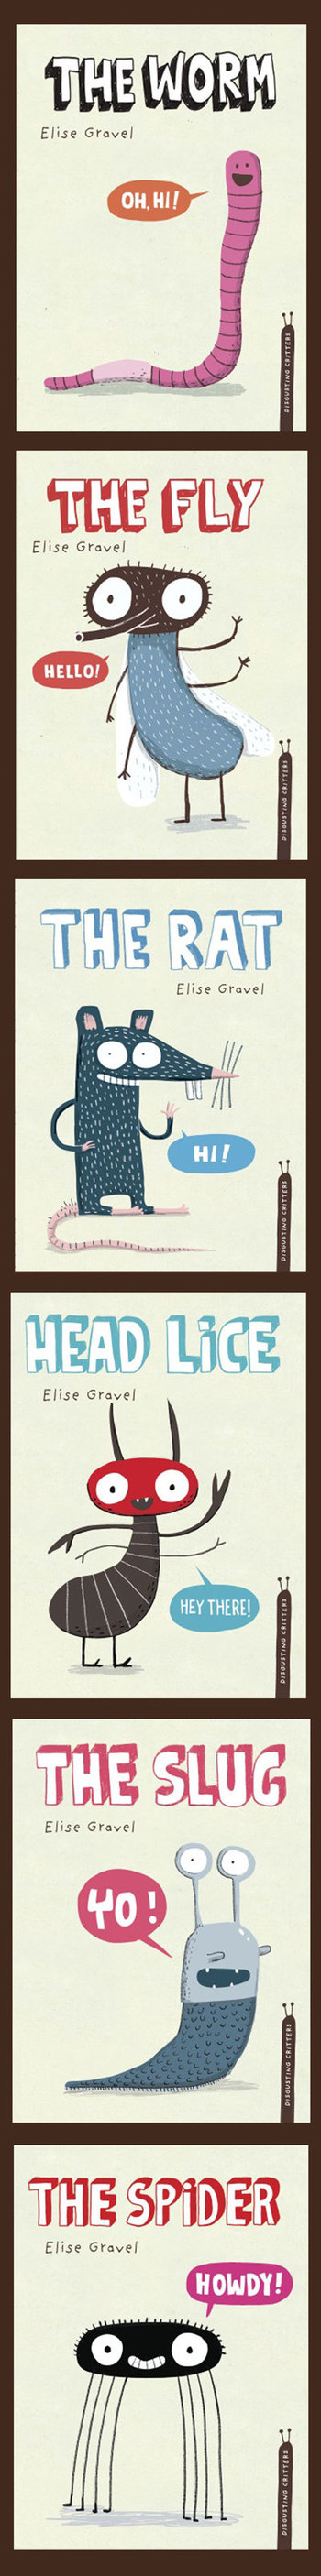 Elise Gravel illustration •The Disgusting Critters series, published with Tundra Books. Funny scienc